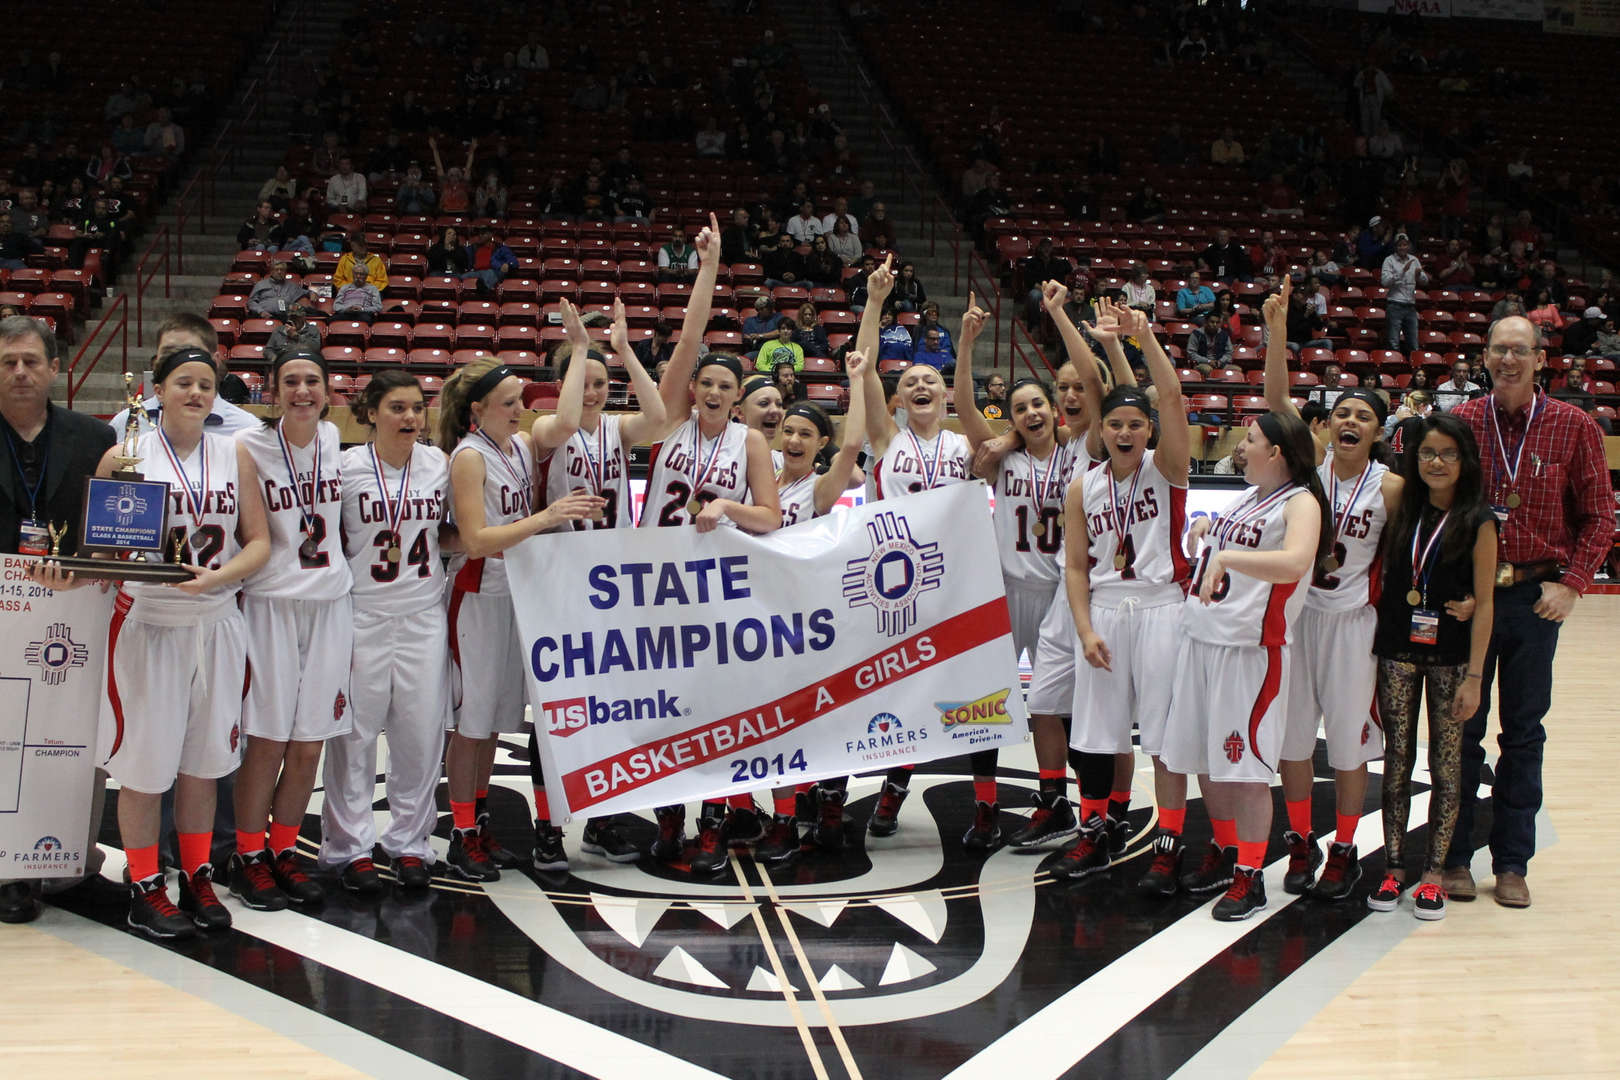 2014 State Champs - Girls Basketball